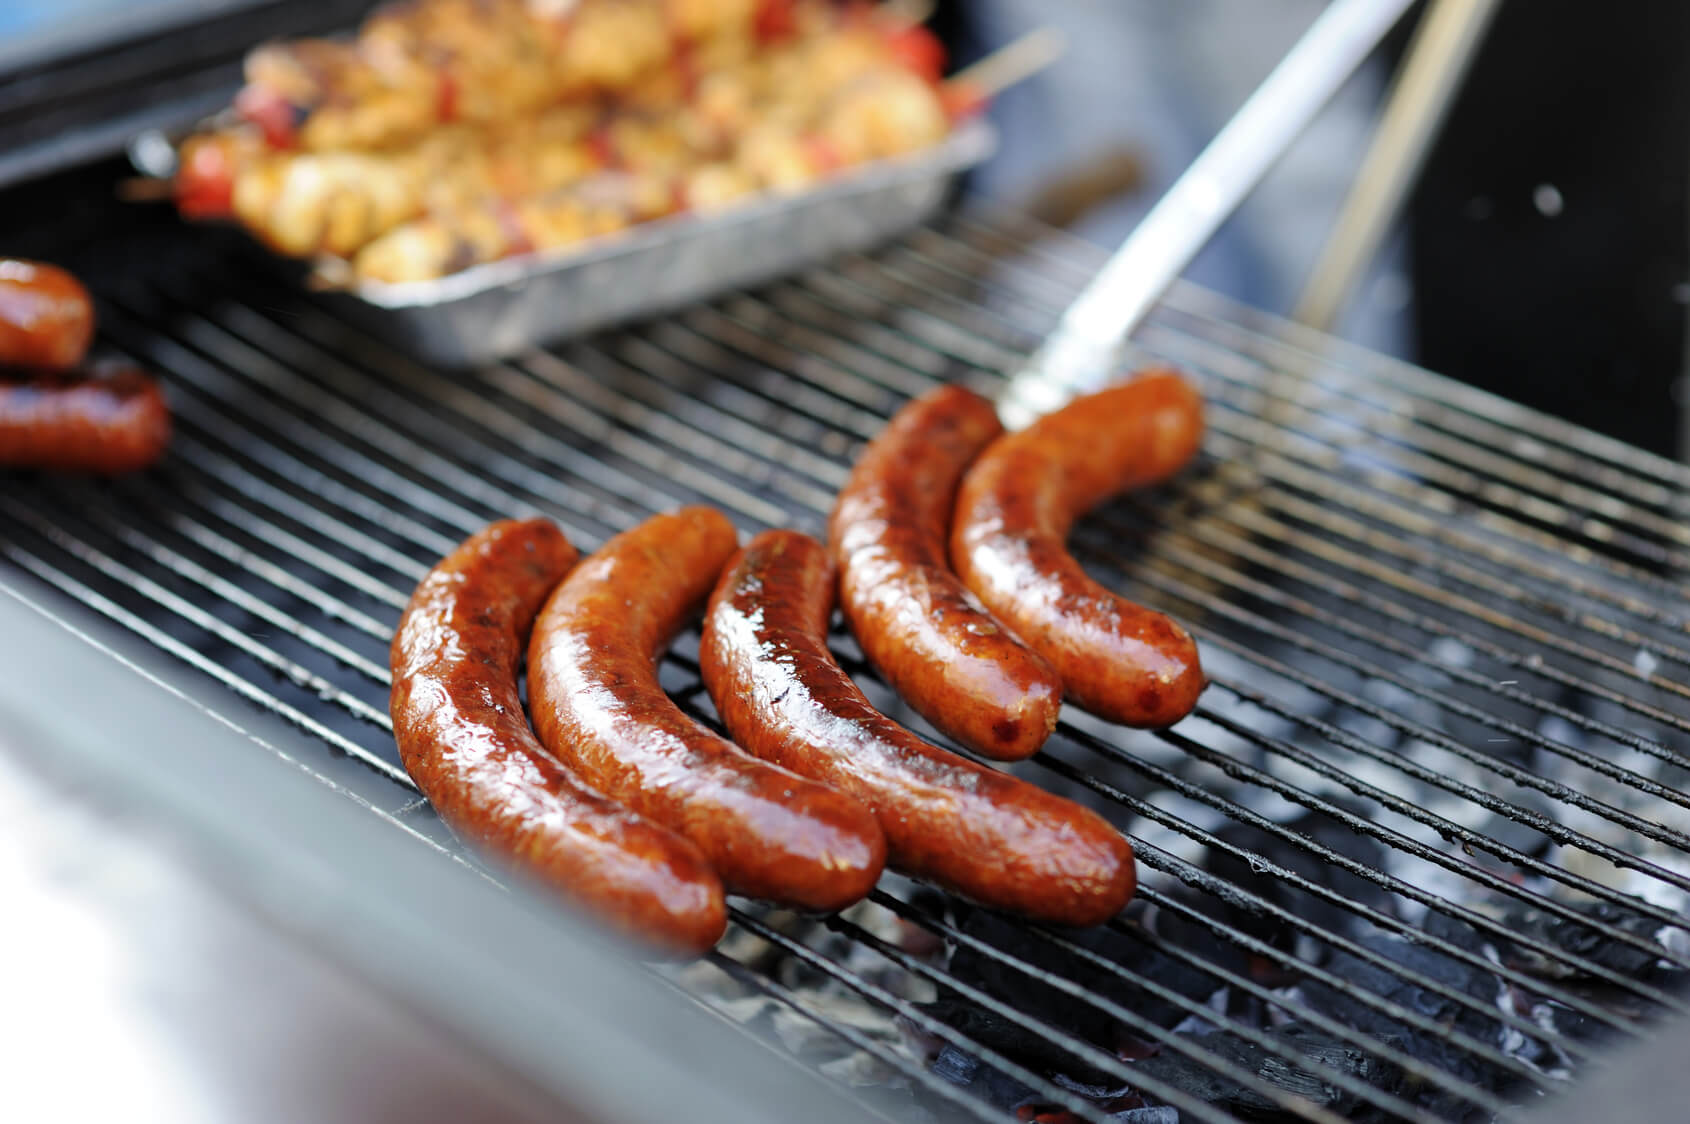 Delicious fresh grilled sausages